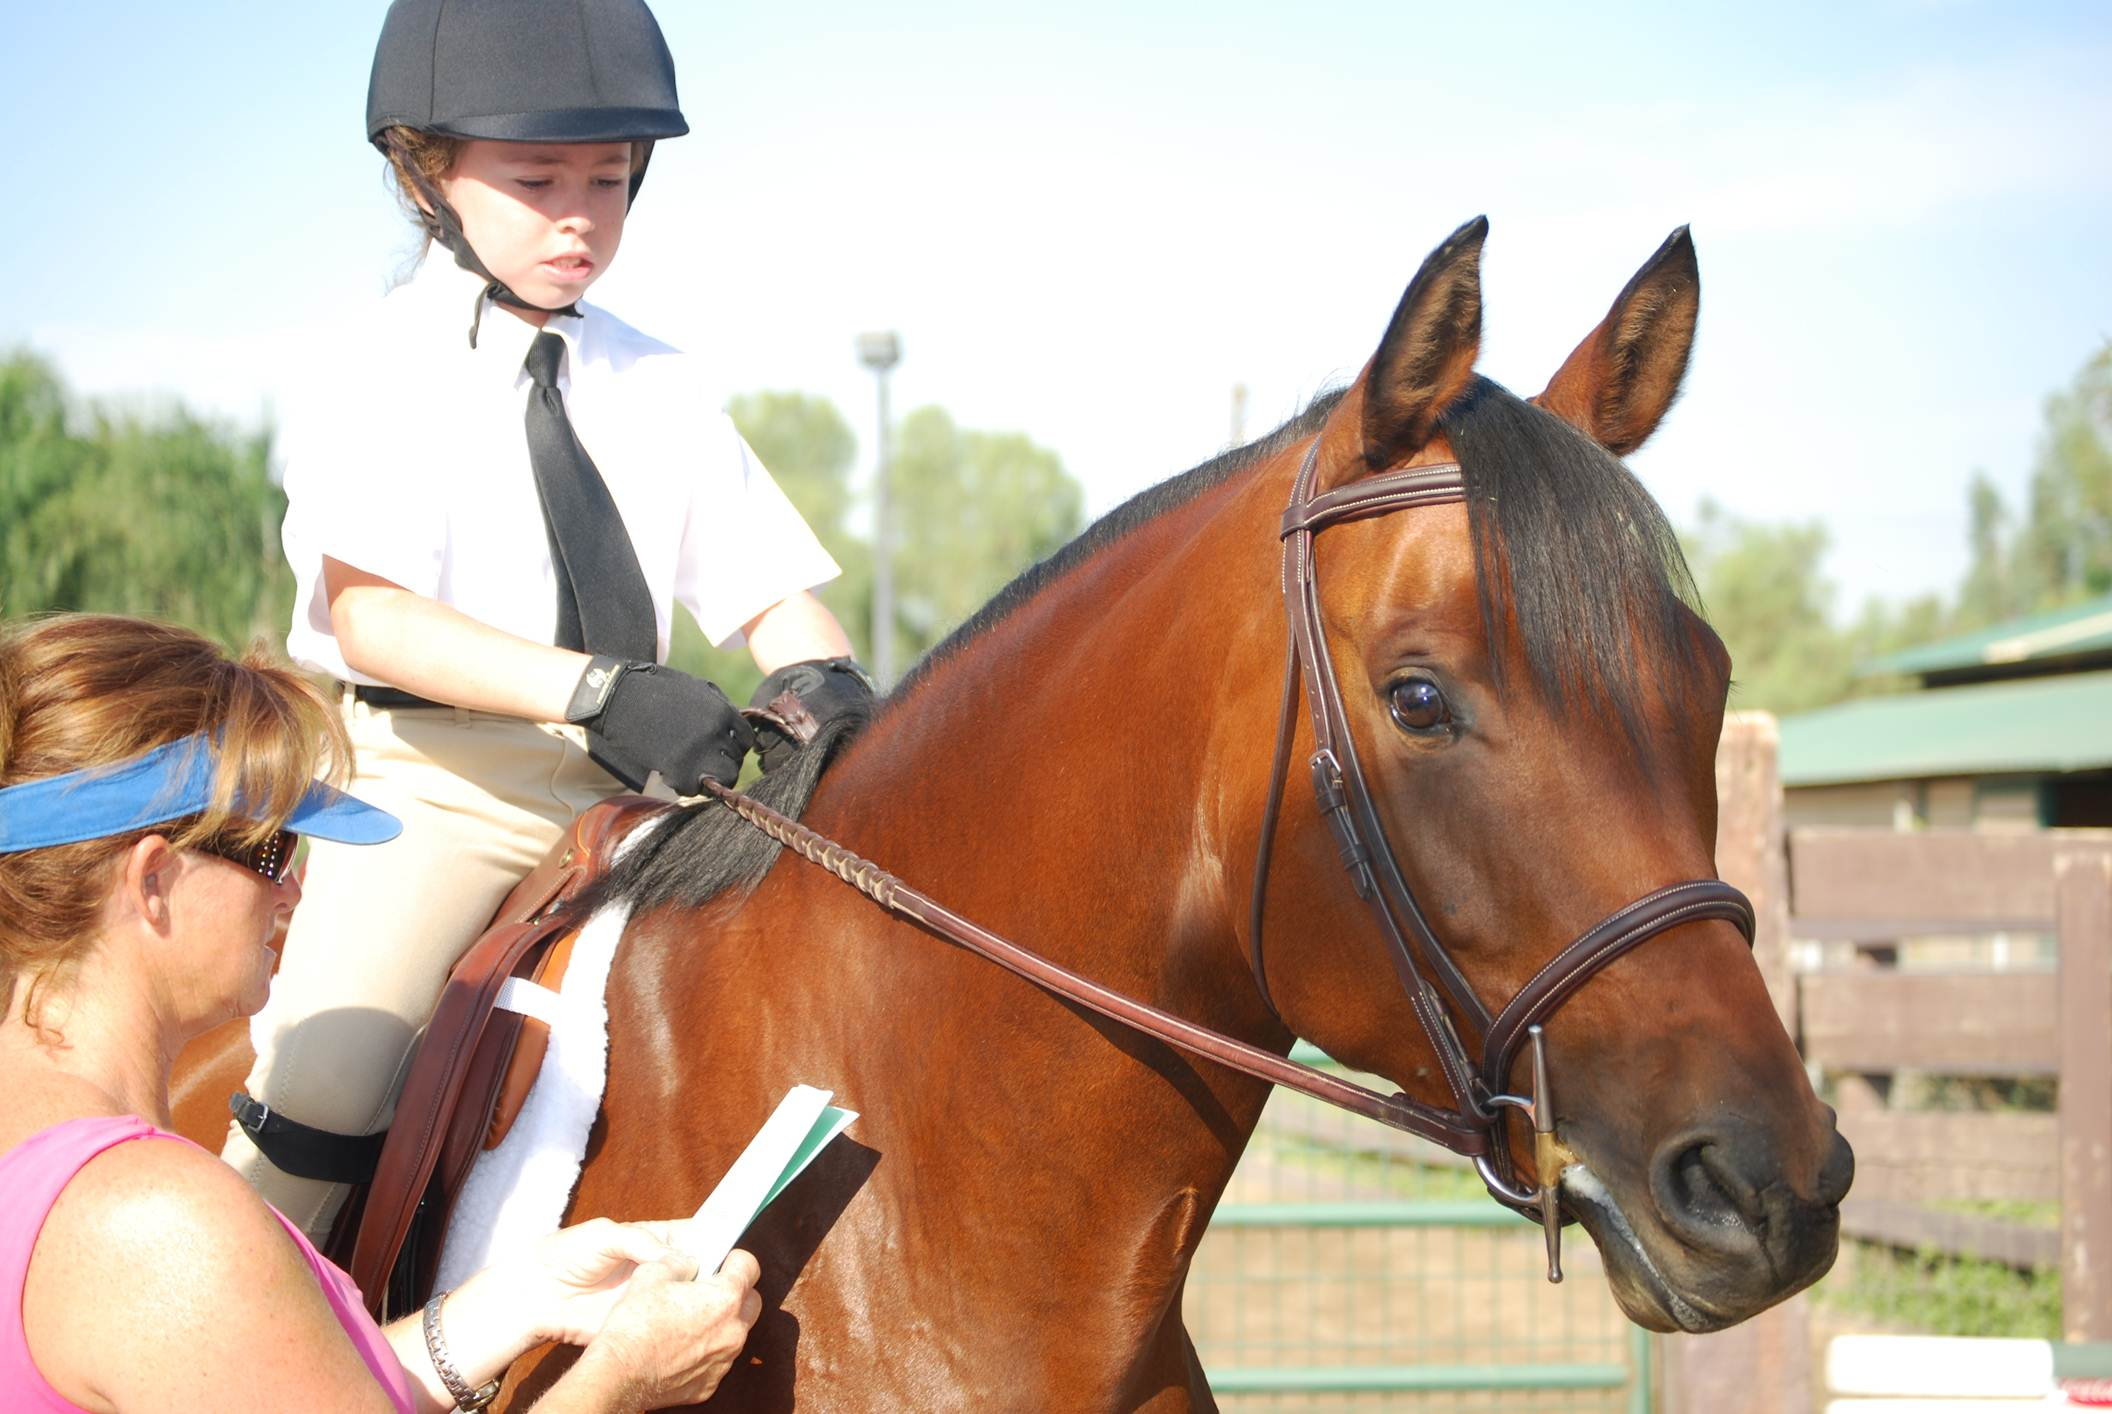 equine colic Learn what the signs of horse colic are and natural remedies for horse colic.